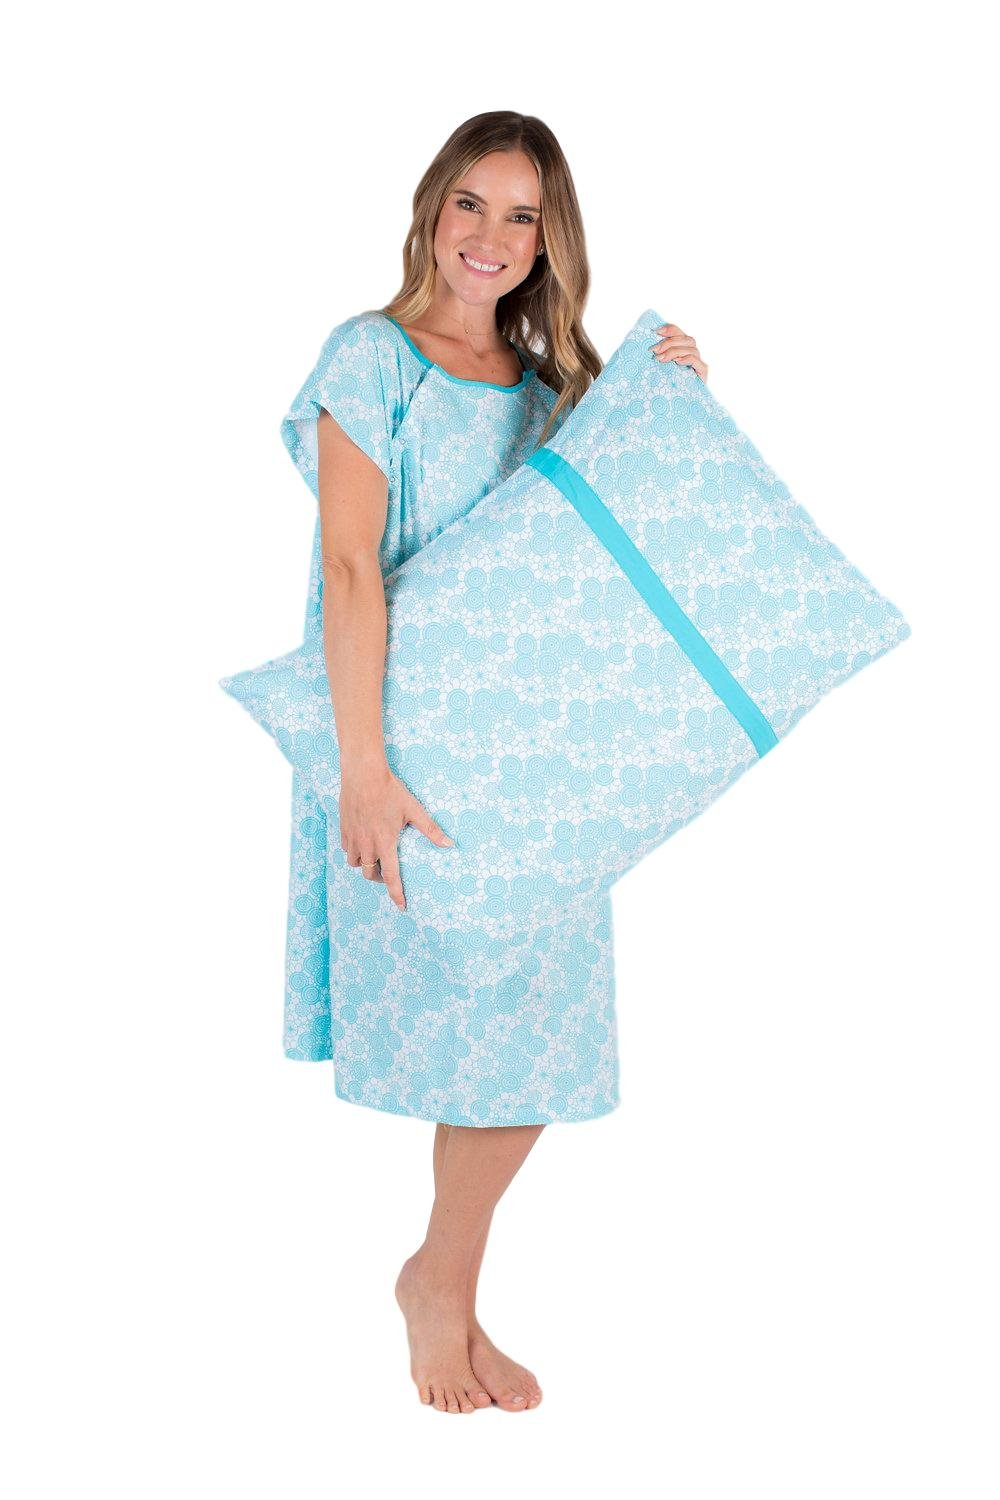 72592896b845e Galleon - Baby Be Mine Gownies - Delivery Maternity Hospital Gown Labor Kit  (Large/XLarge Pre Pregnancy 10-16, Celeste)